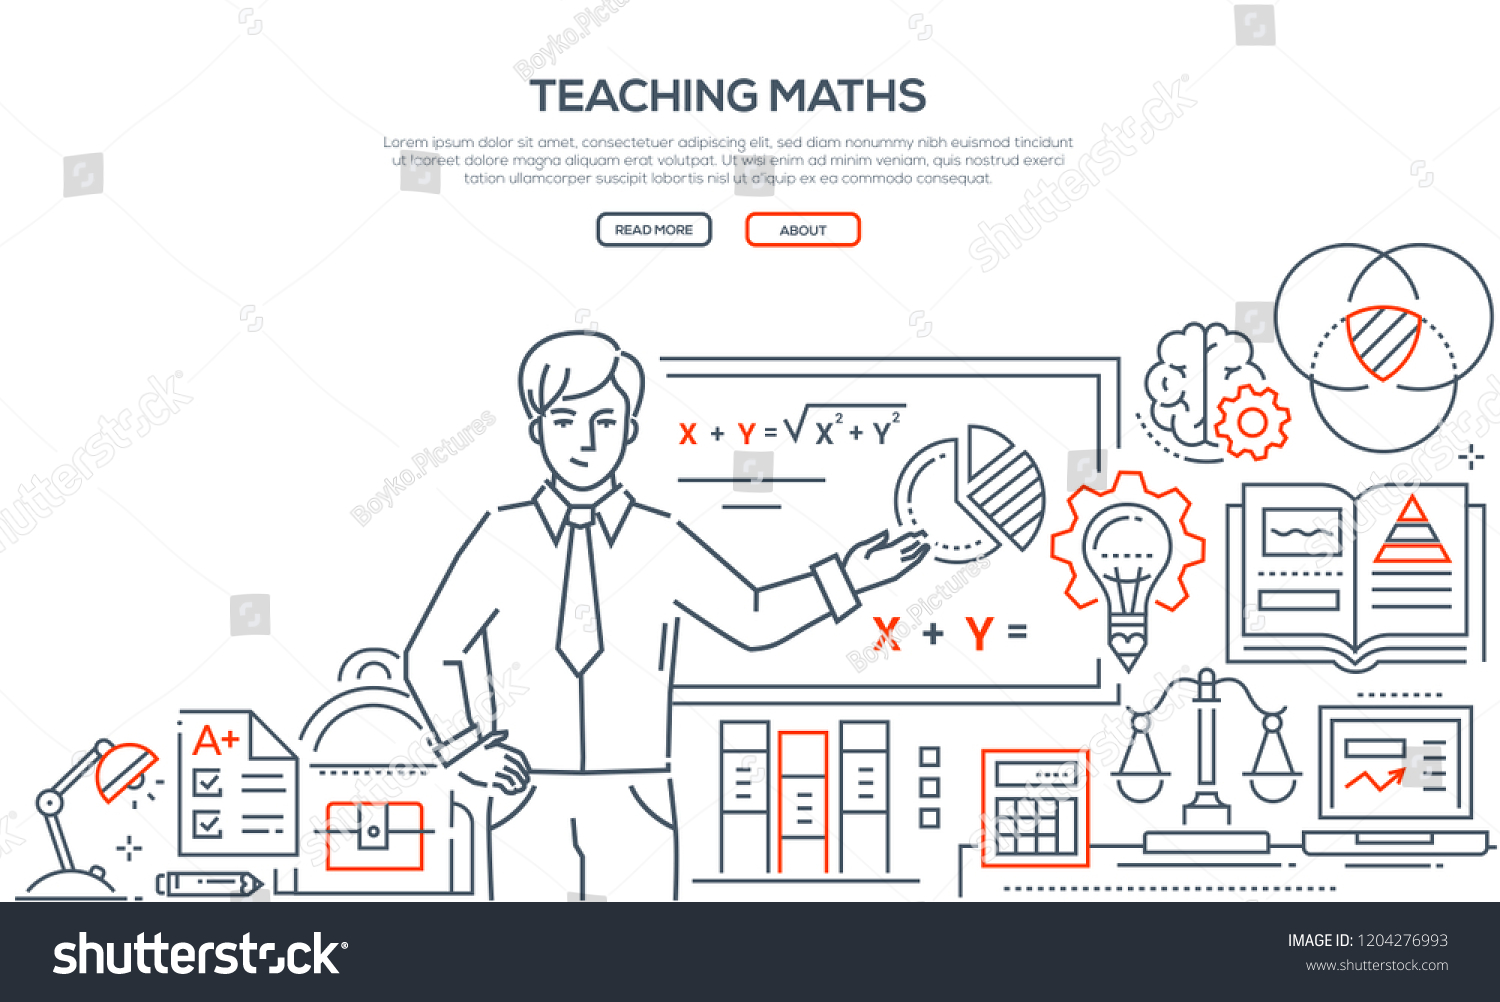 Teaching Maths Teaching Maths Colorful Line Design Style Stock Vector Royalty